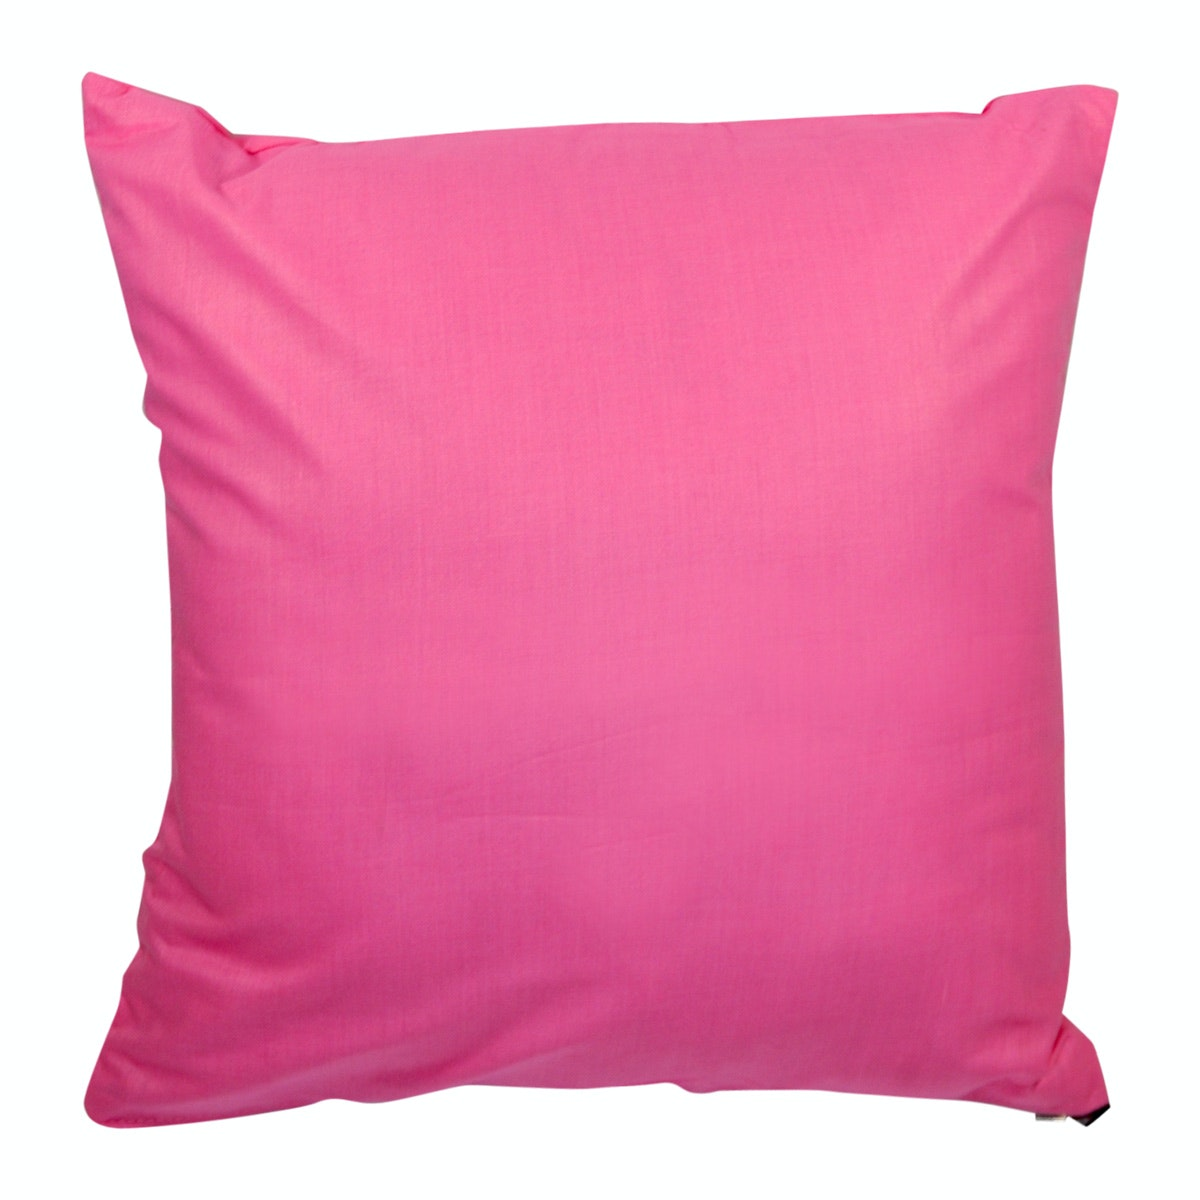 Stiletto Living Cushion Cover / Sarung Bantal Sofa Polos - Pink